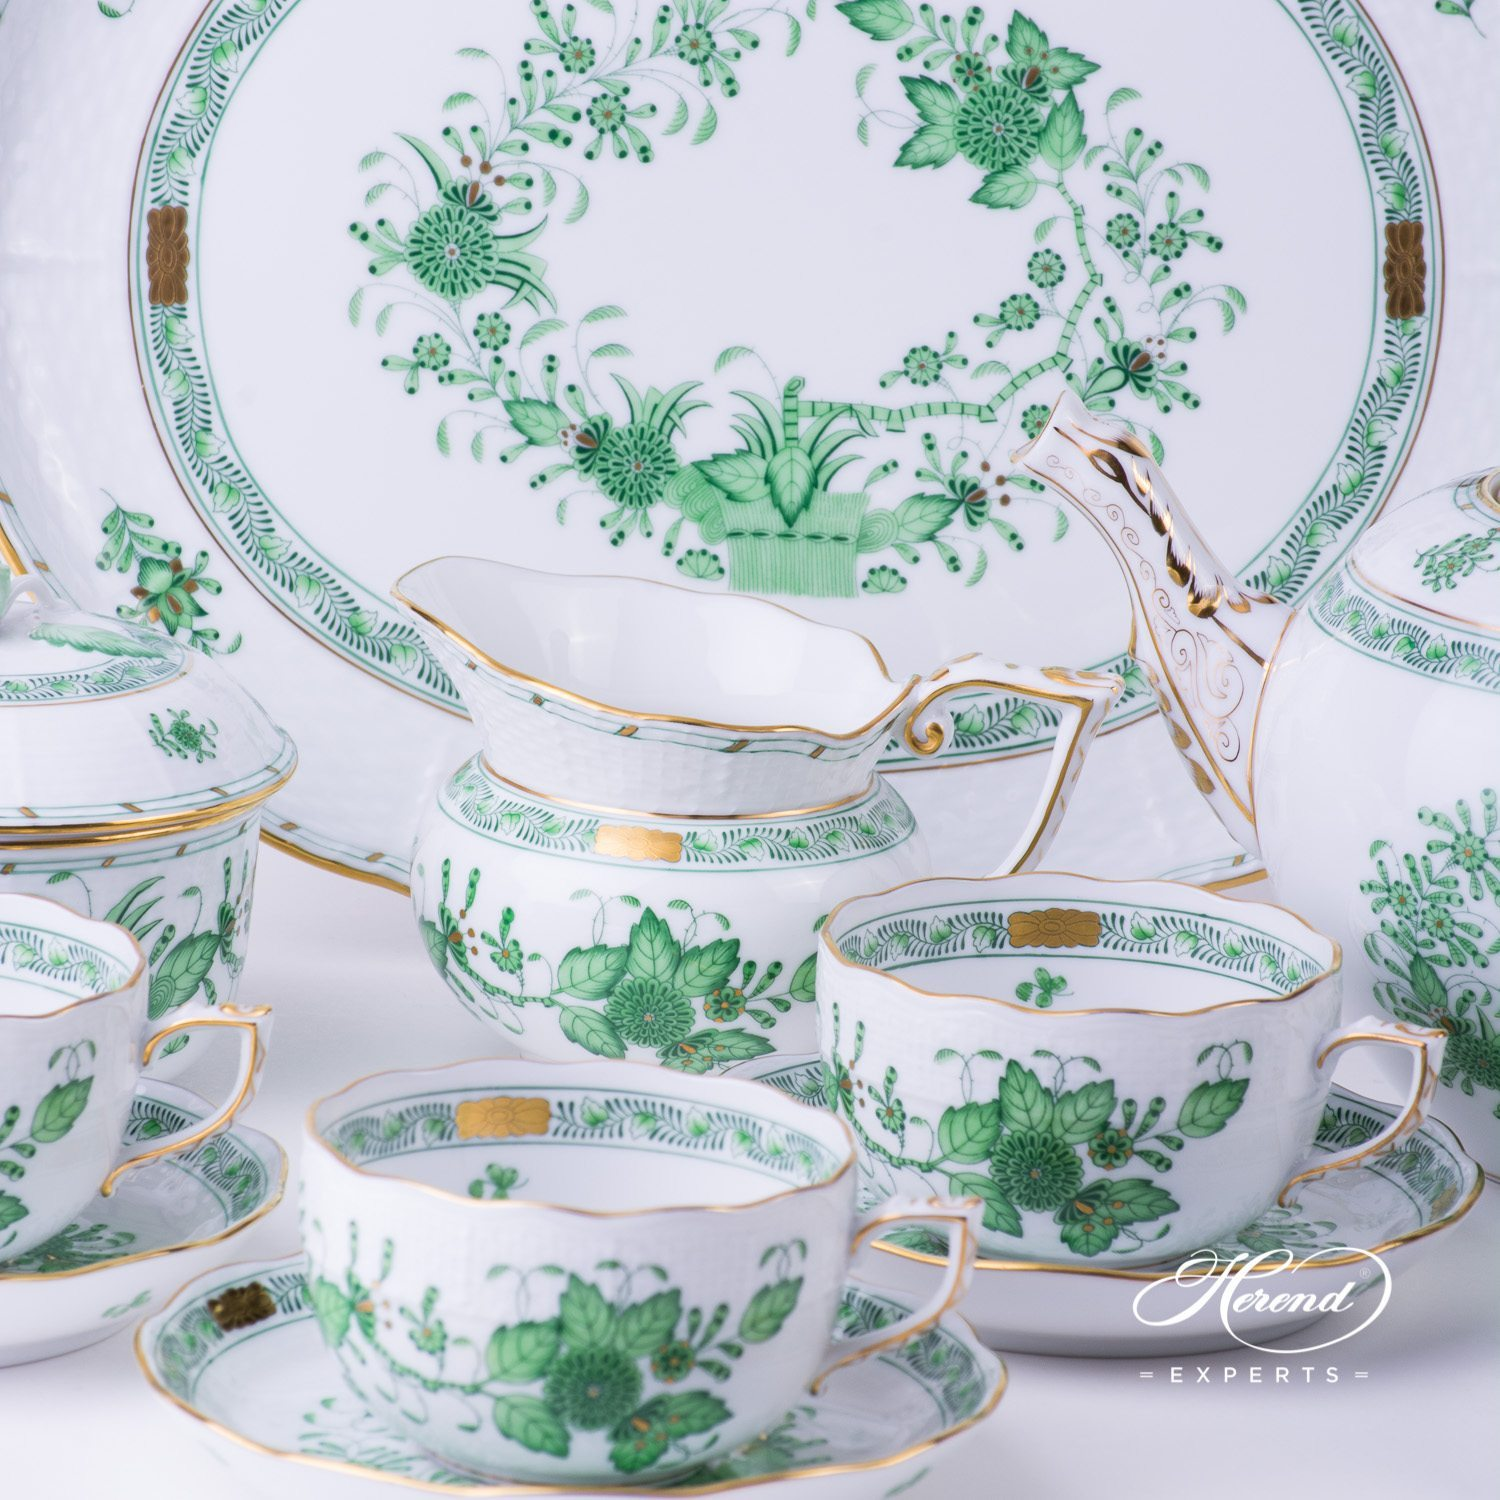 Tea Set for 4 Persons - Herend Indian Basket Green FV pattern. Herend fine china hand painted. Classic Herend pattern